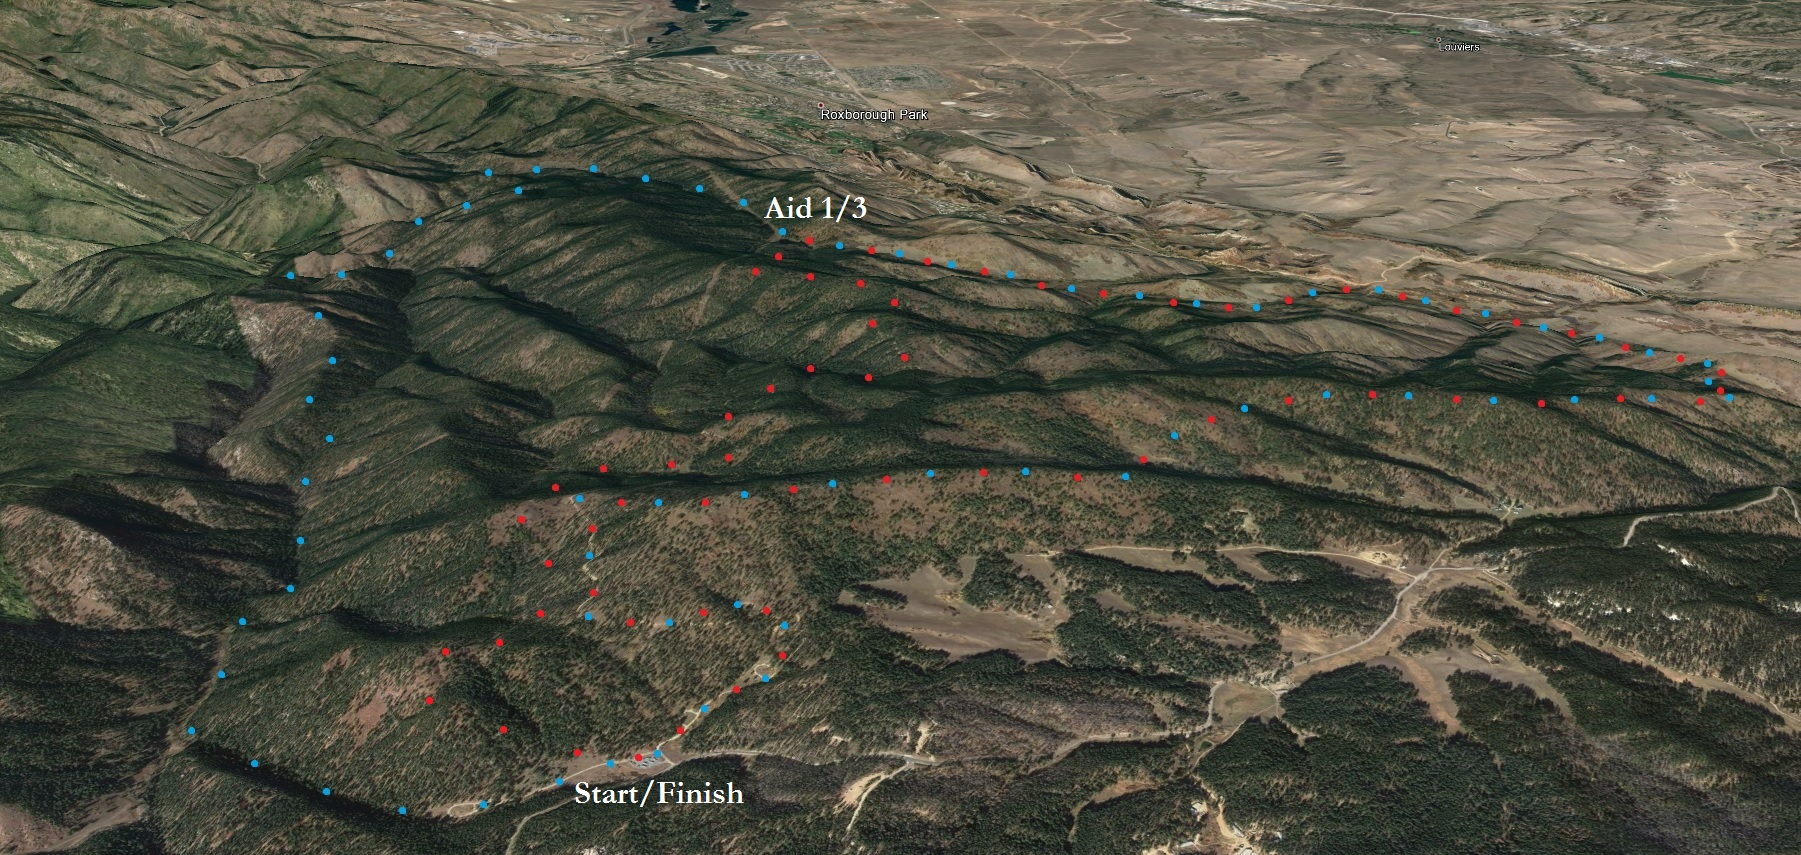 Rendering of the course from Google Earth. Red is the first CCW loop, blue is the second CW loop.